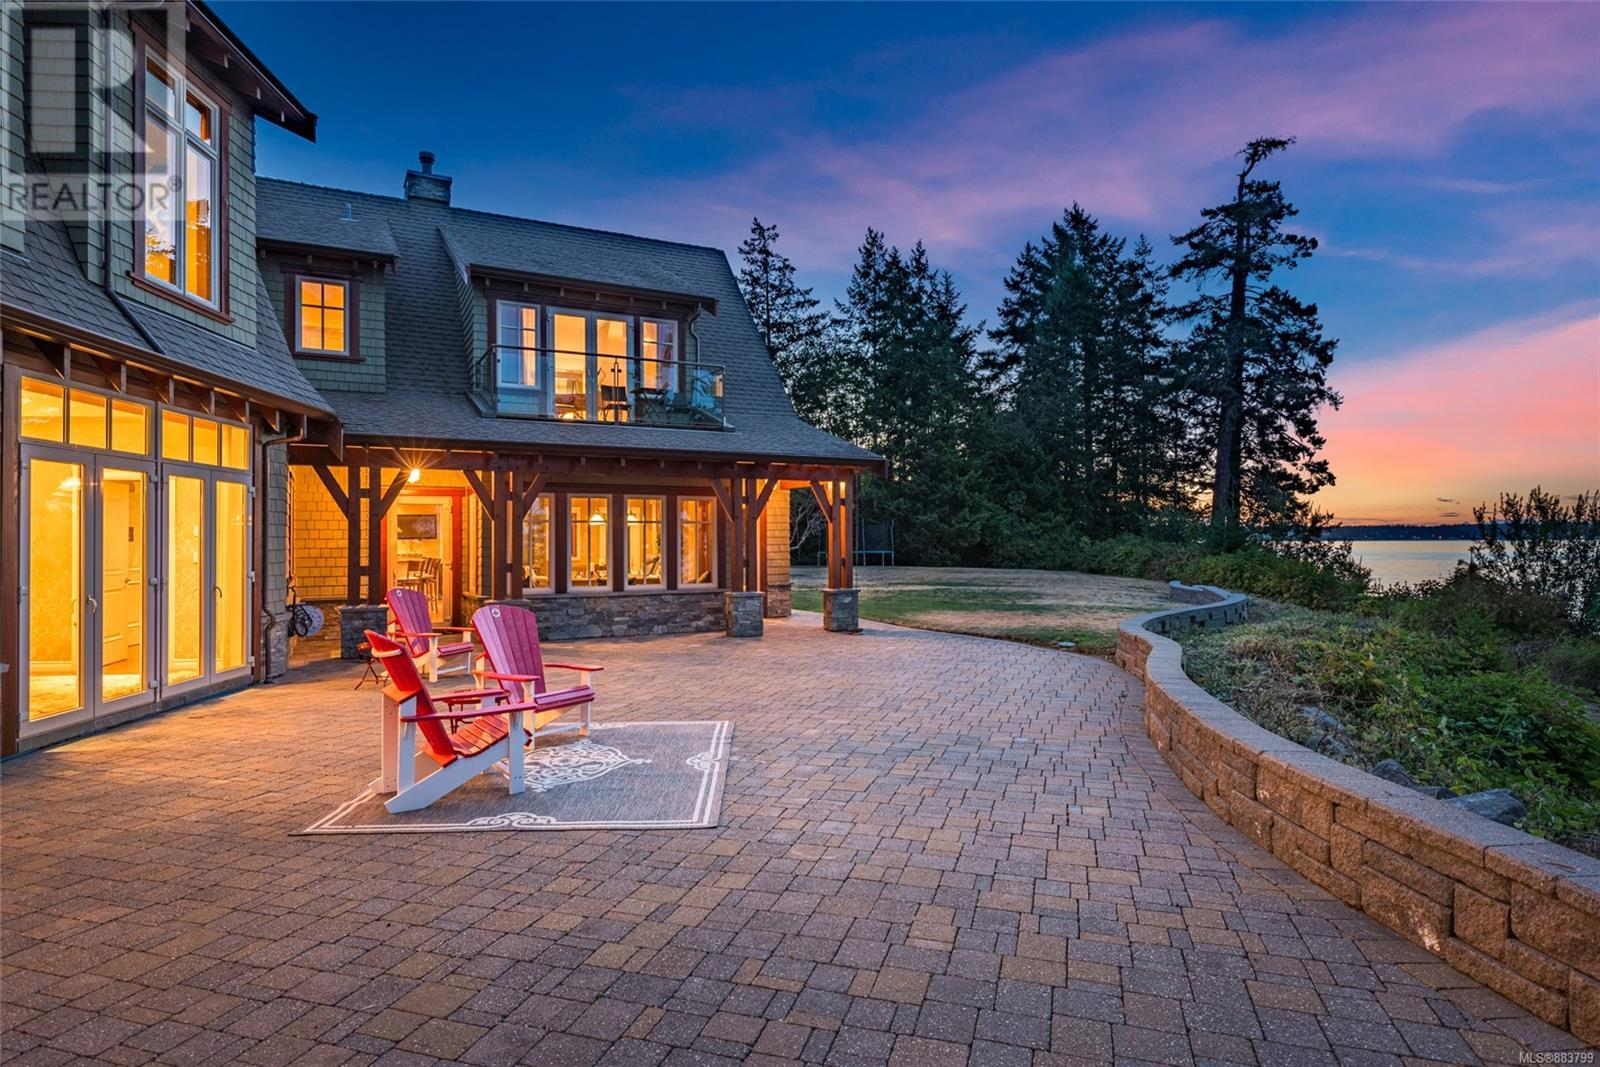 MLS® #883799 - Courtenay House For sale Image #71